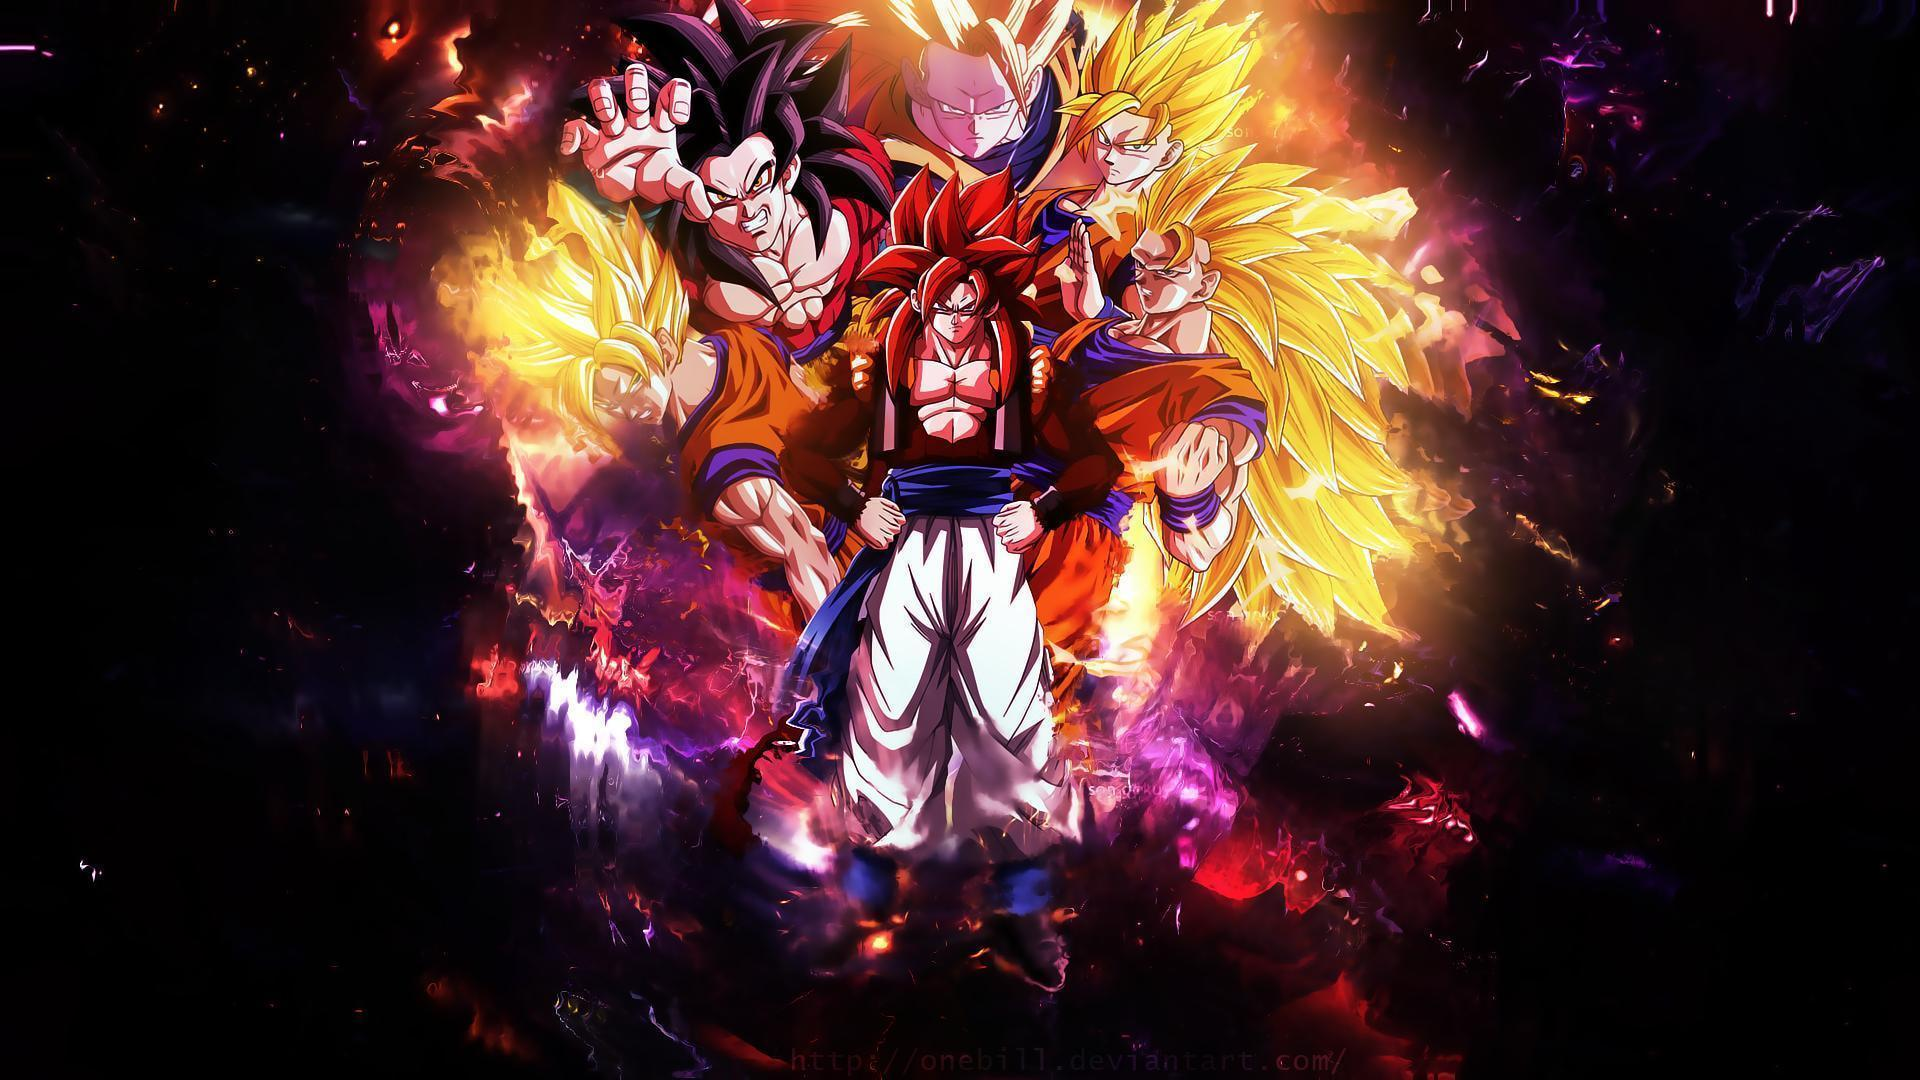 Son goku wallpaper for z10 bb transformation